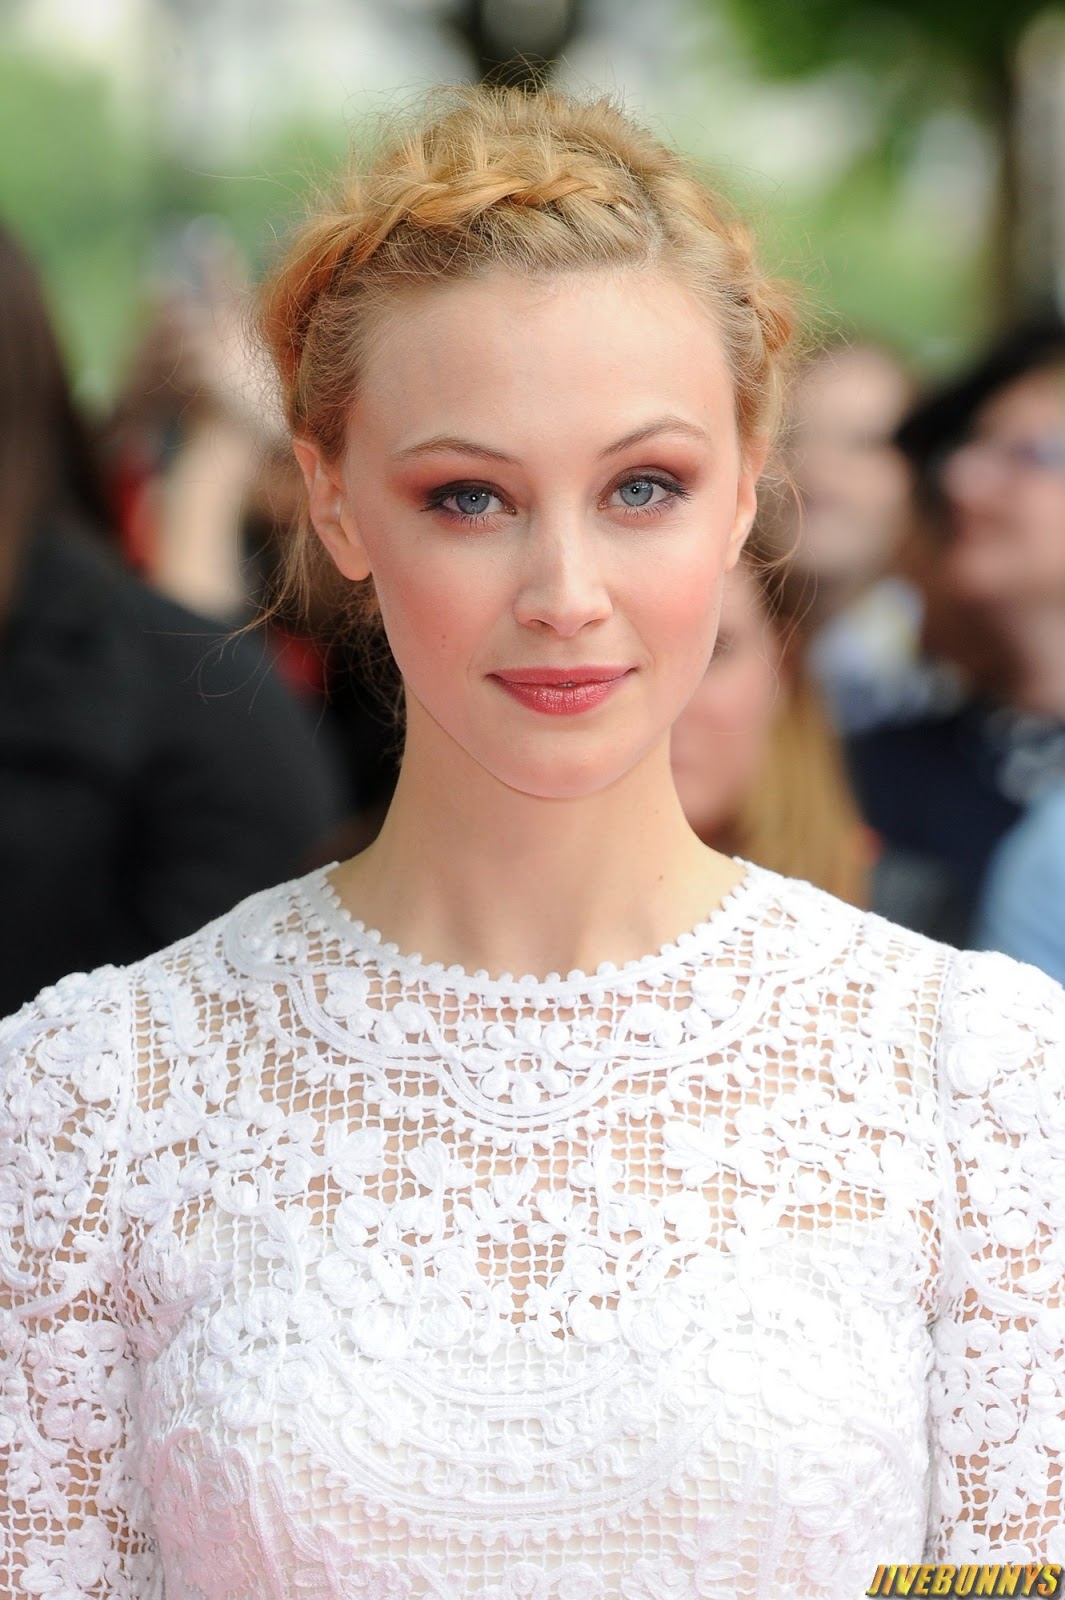 Sarah Gadon Gets Glam On Fashion Magazine Cover: Sarah Gadon Sexy Photos And Picture Gallery 2